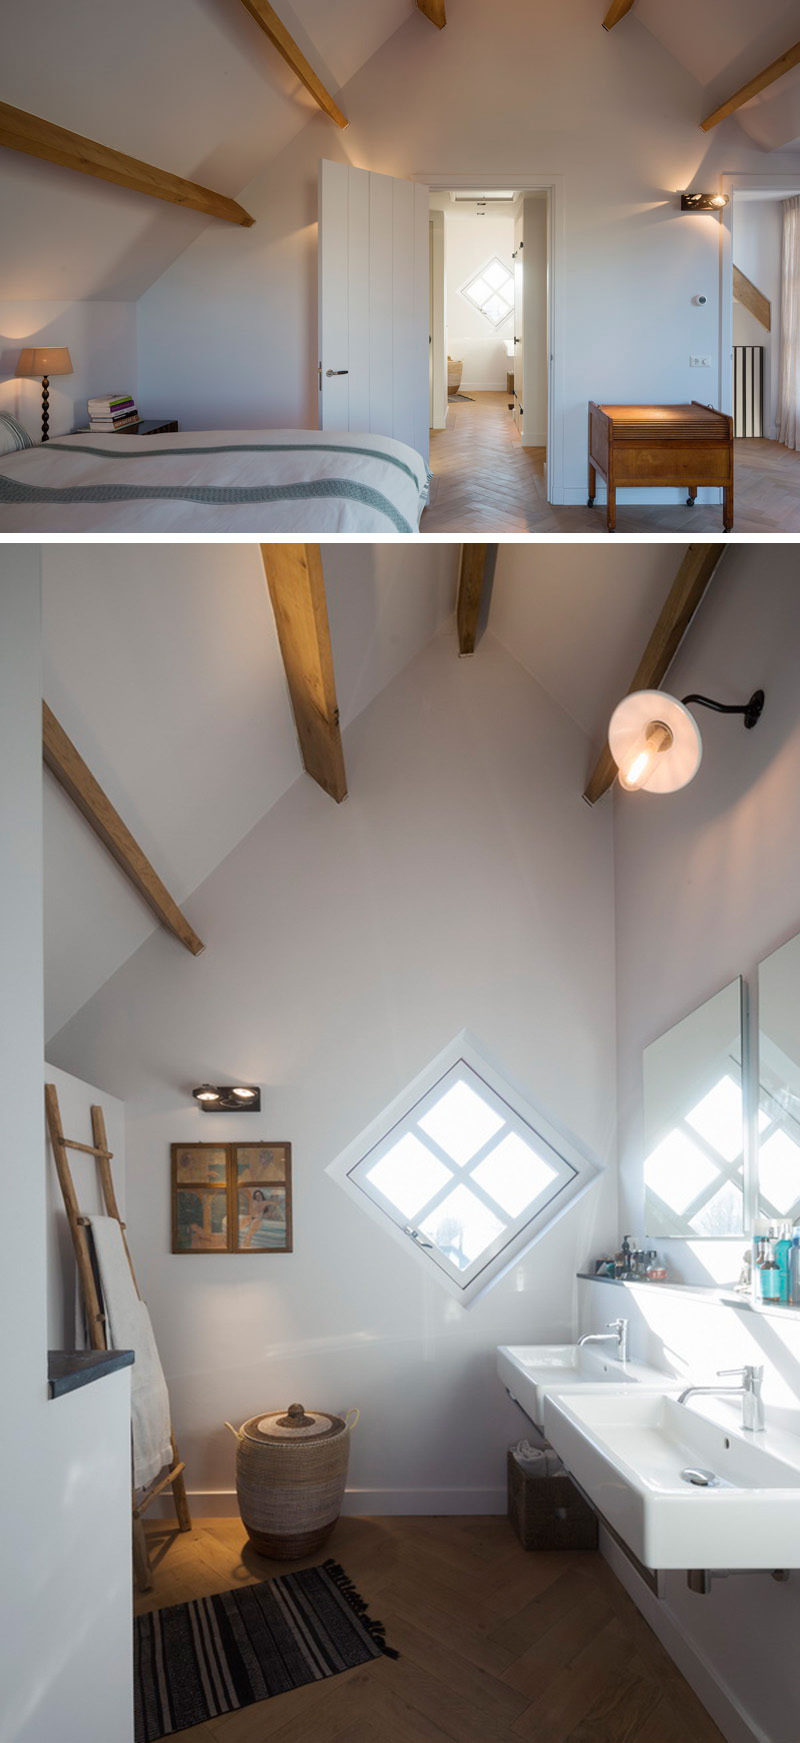 This contemporary master bedroom and ensuite washroom are uniquely shaped by the roof line of the house. Minimally decorated white walls and wood beams, these rooms have a contemporary farmhouse feel.